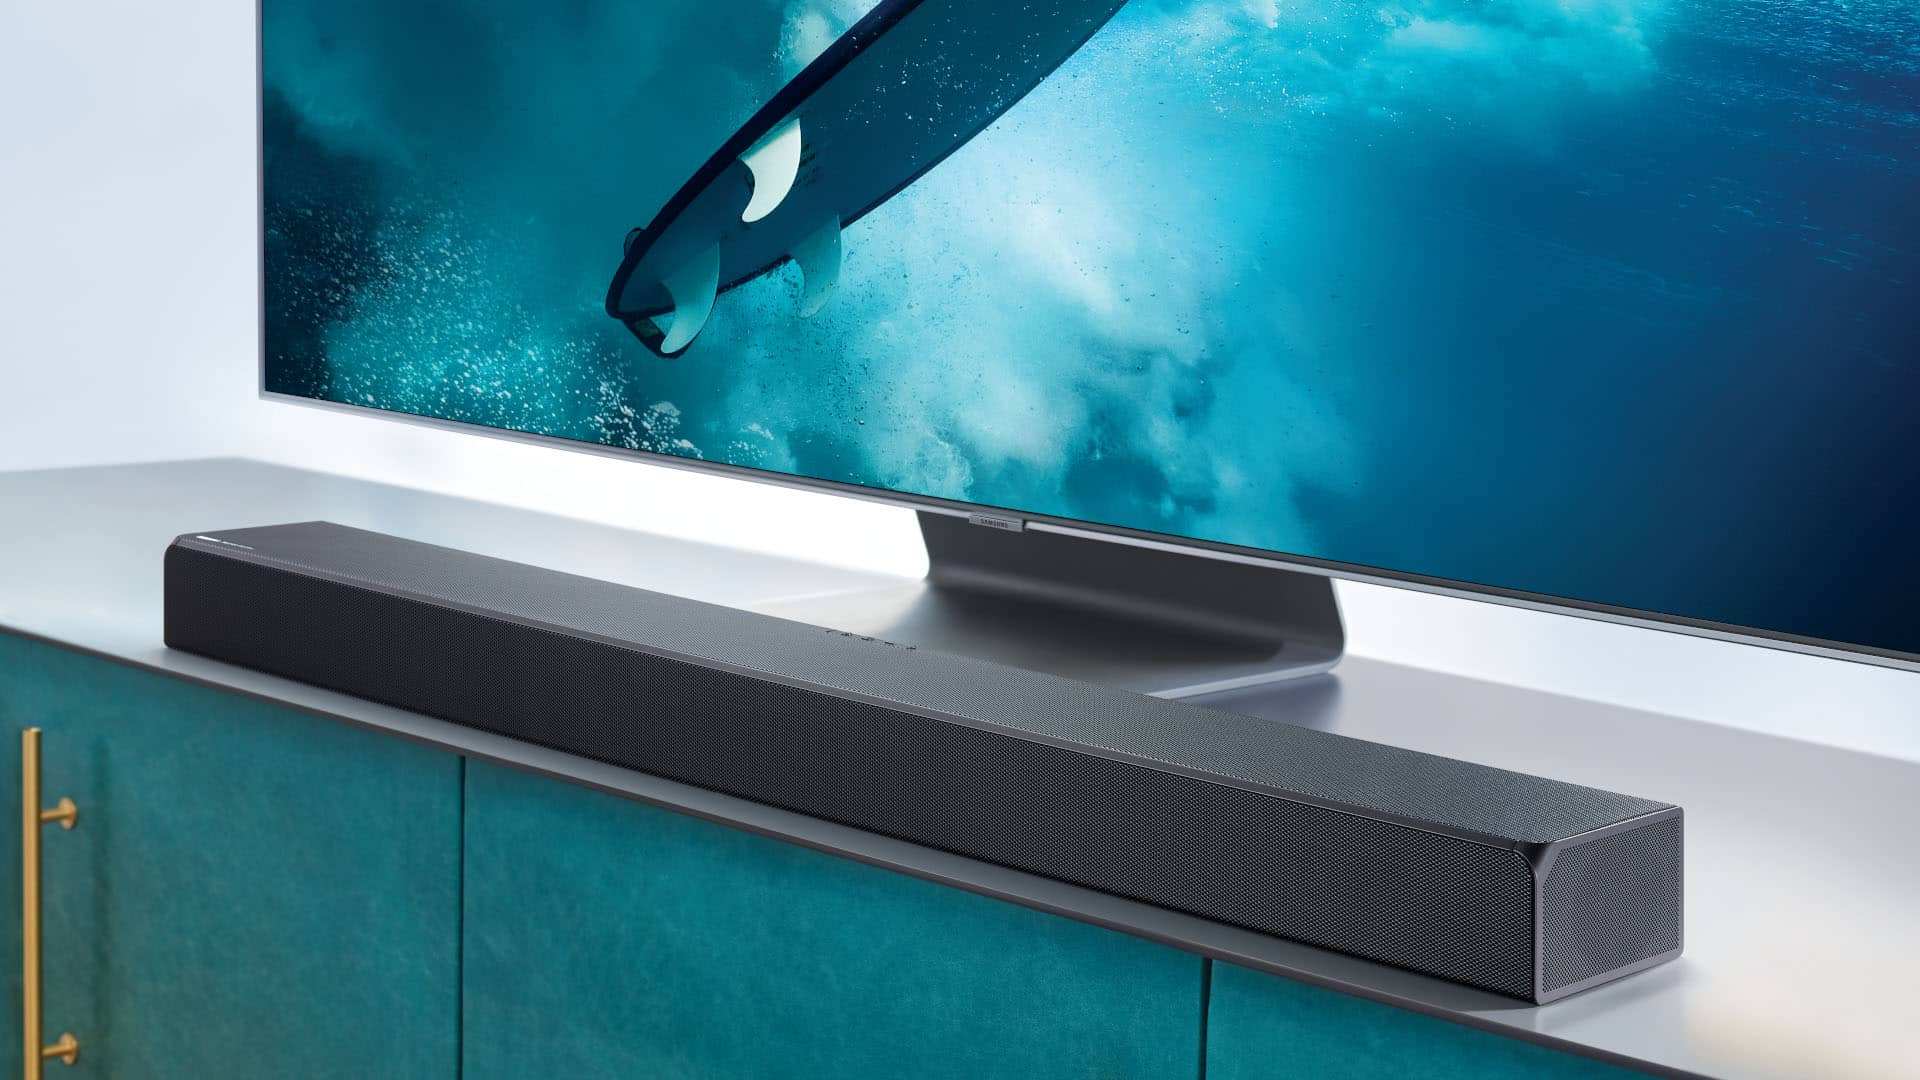 Best Soundbars for Speech